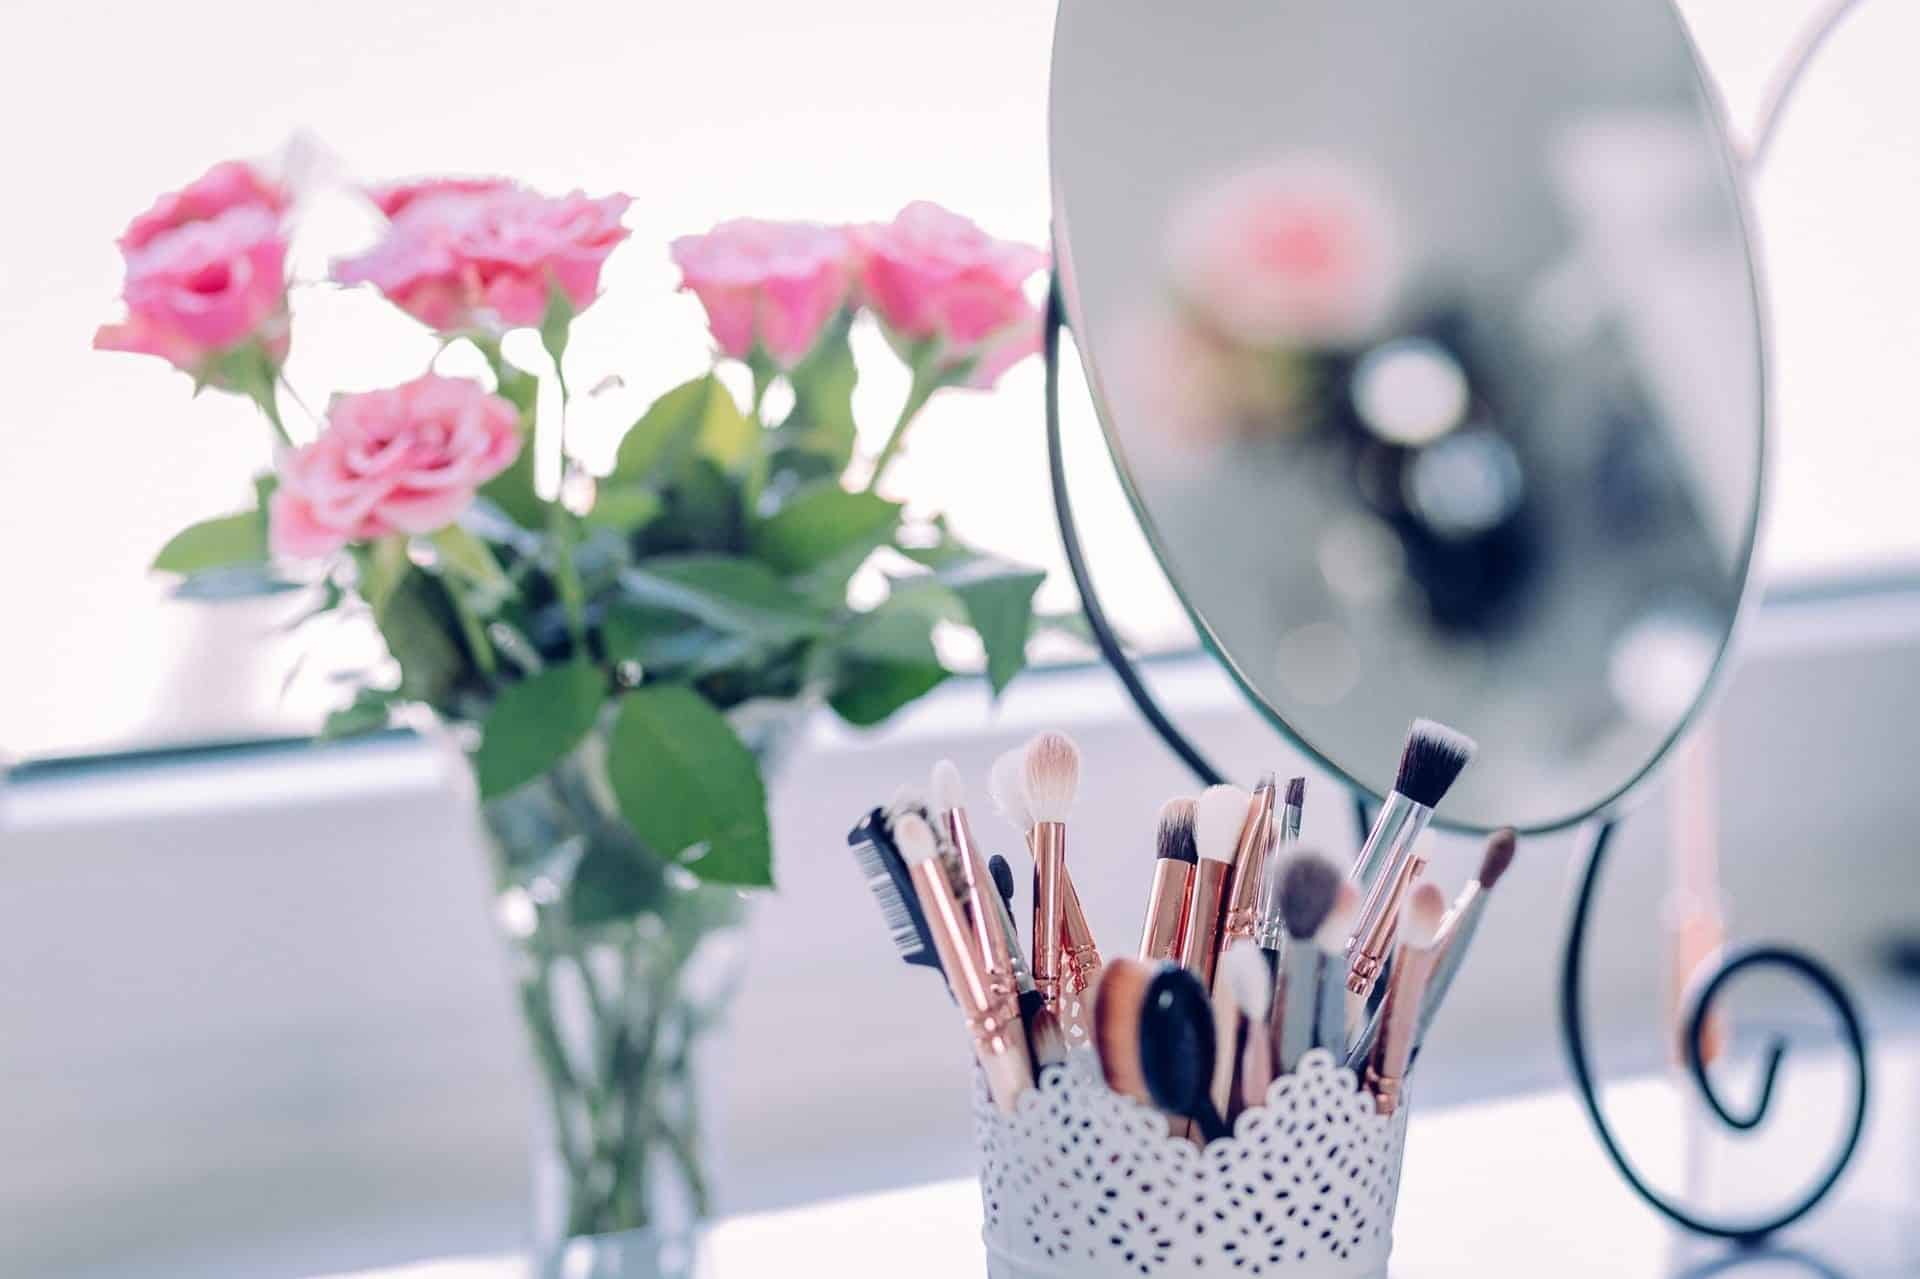 The Ultimate Makeup Brush Buying Guide- The Brushes You Really Need And How to Use Them!